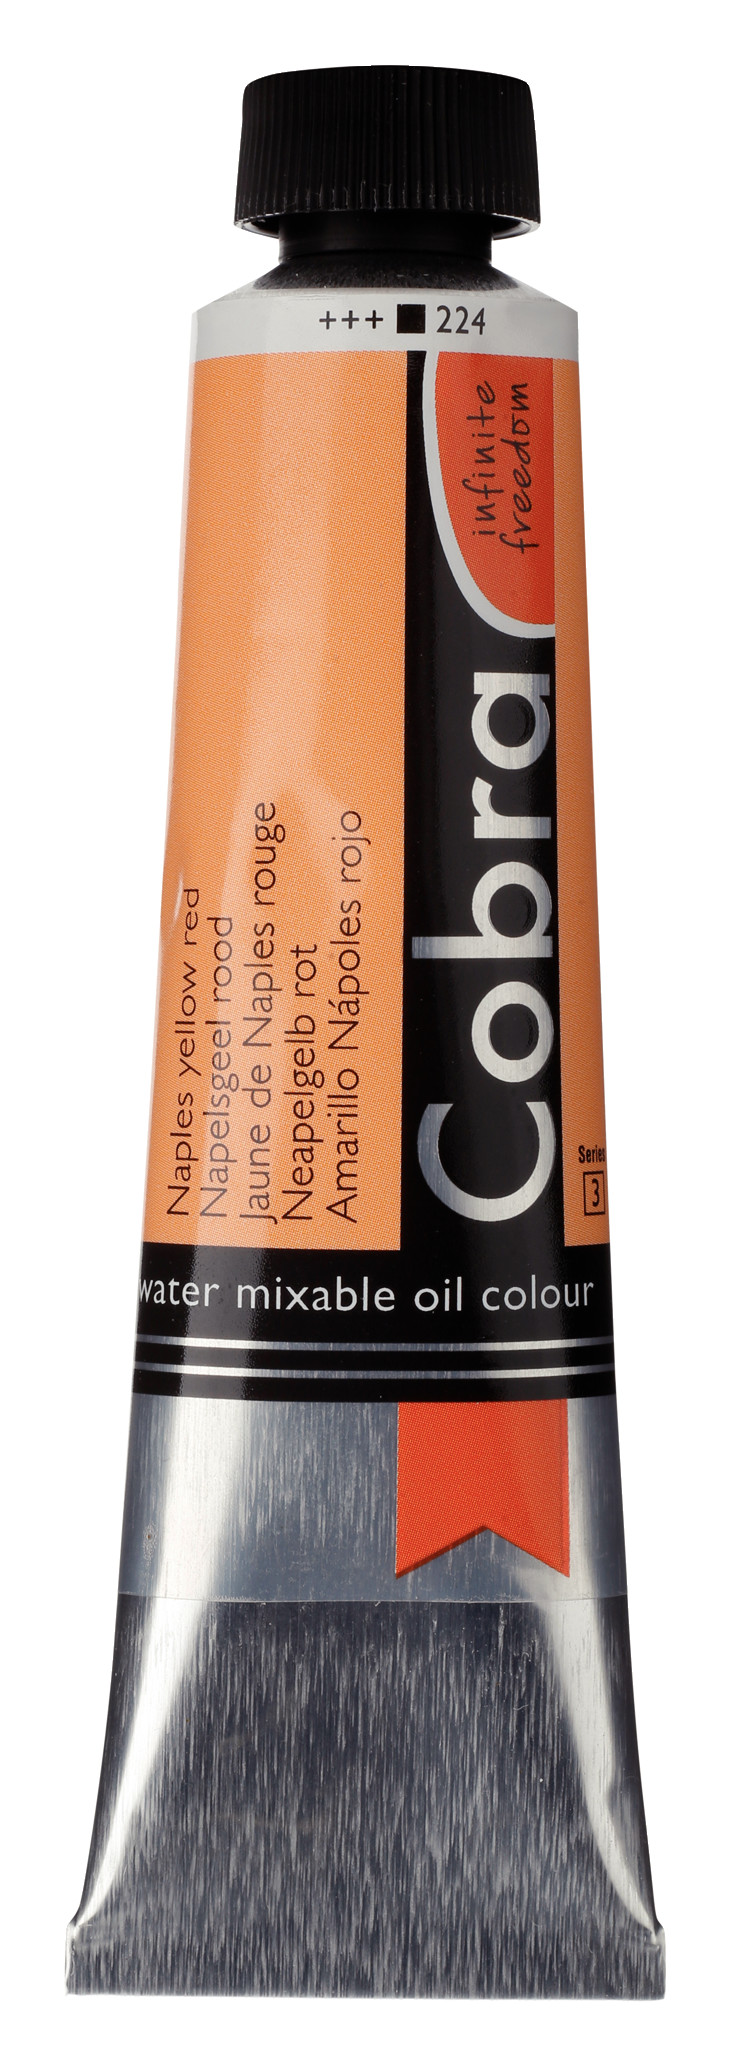 Cobra Artist Water Mixable Oil Colour Tube 40 ml Naples yellow red 224